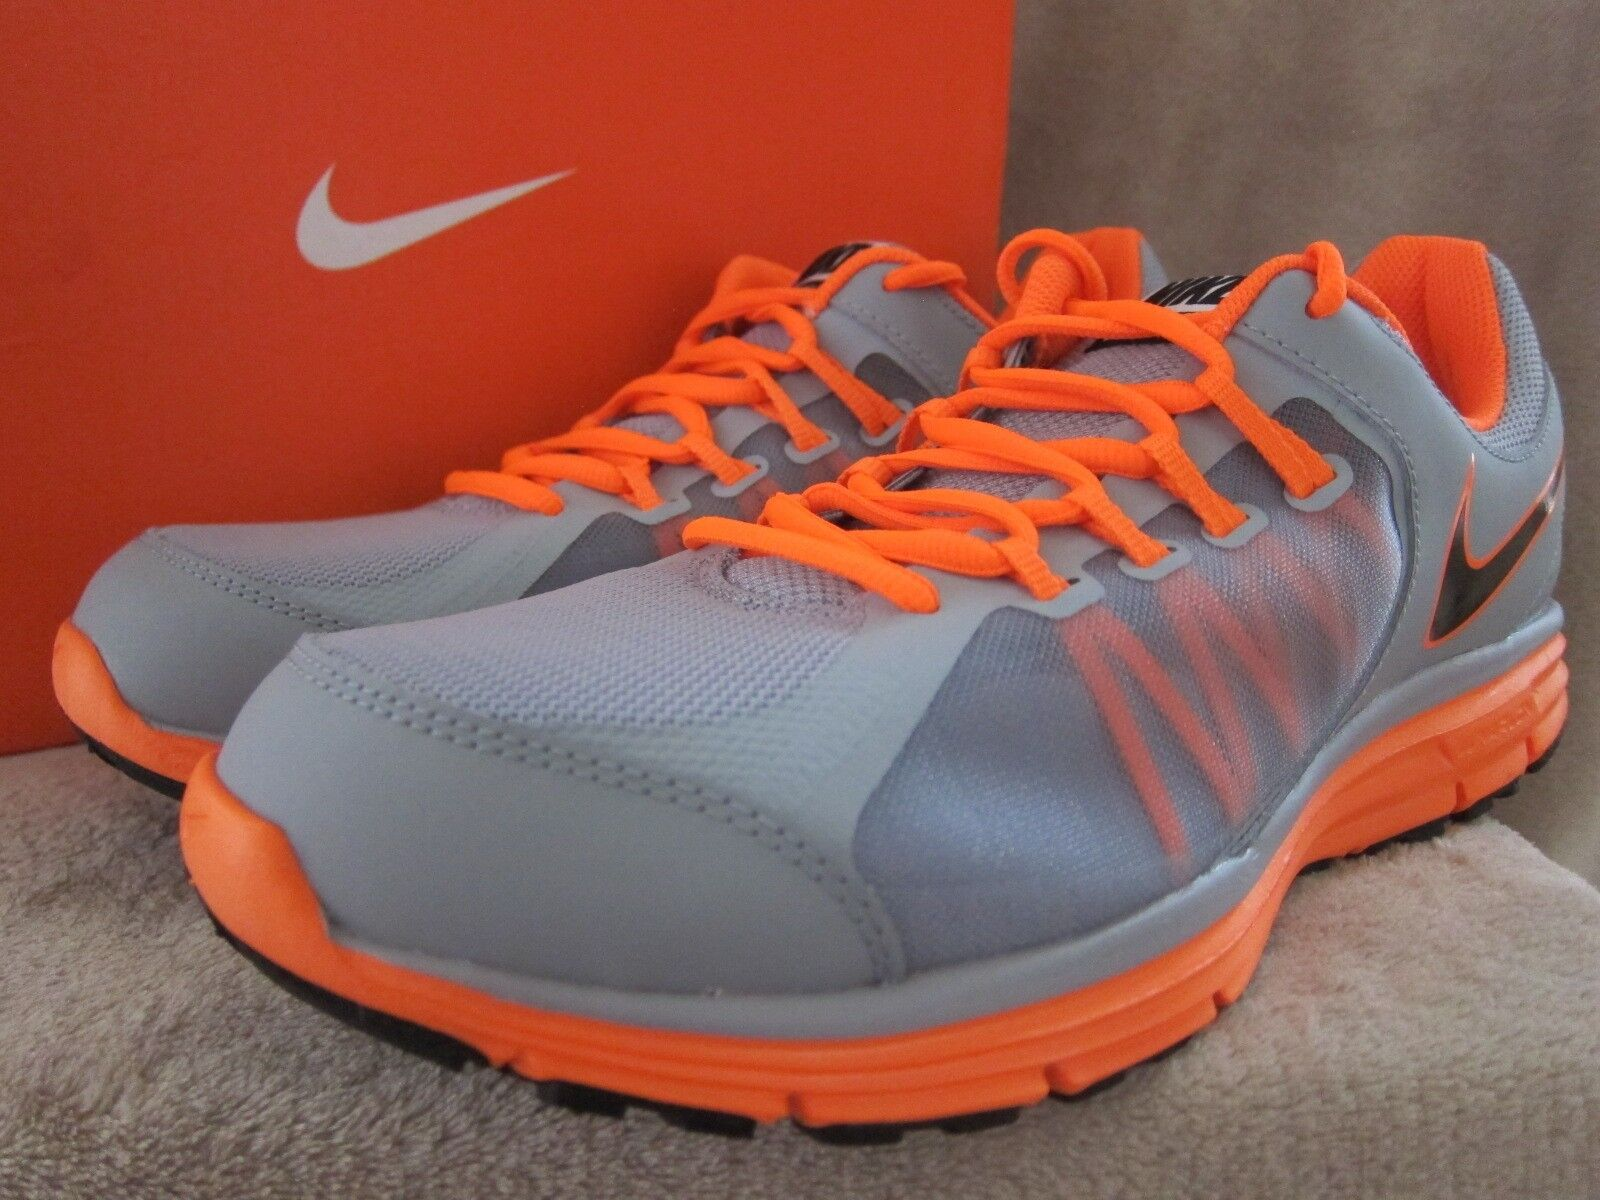 NIKE Mens Lunar Forever 3 Running Low Cut Sneakers Shoes US 10.5 M NWB